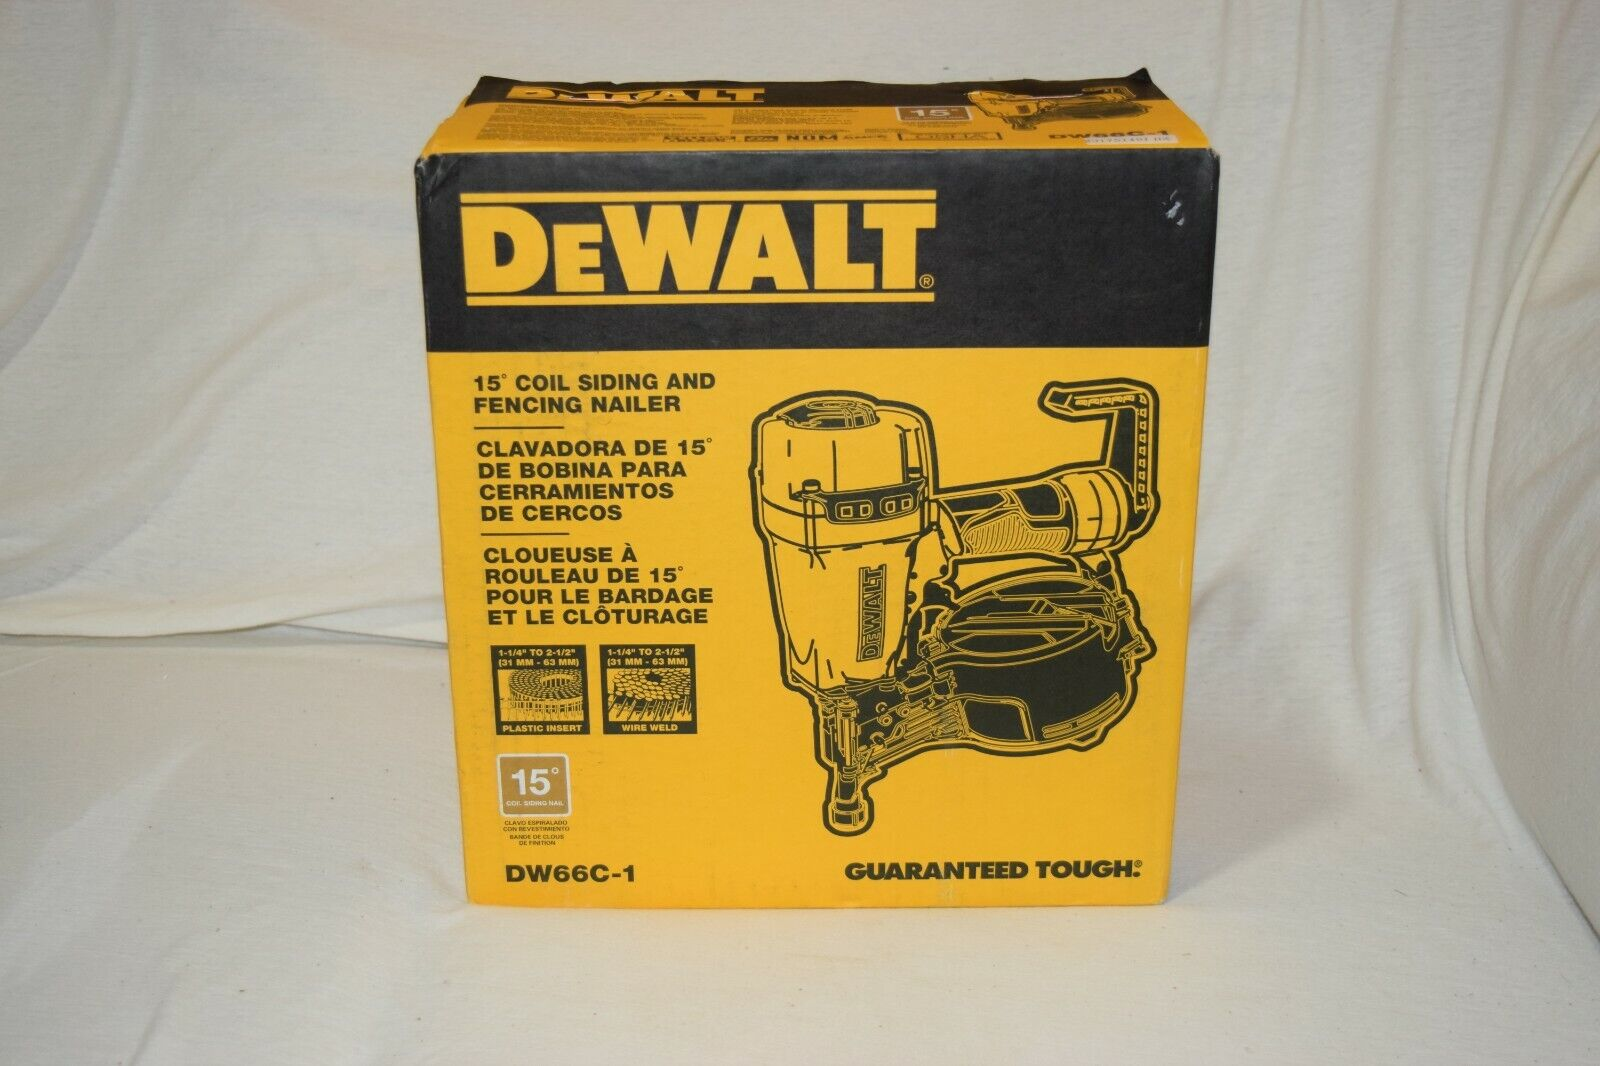 DEWALT DW66C-1 Pneumatic 15-Degree Coil Siding and Fencing Nailer - NEW & SEALED. Buy it now for 309.99